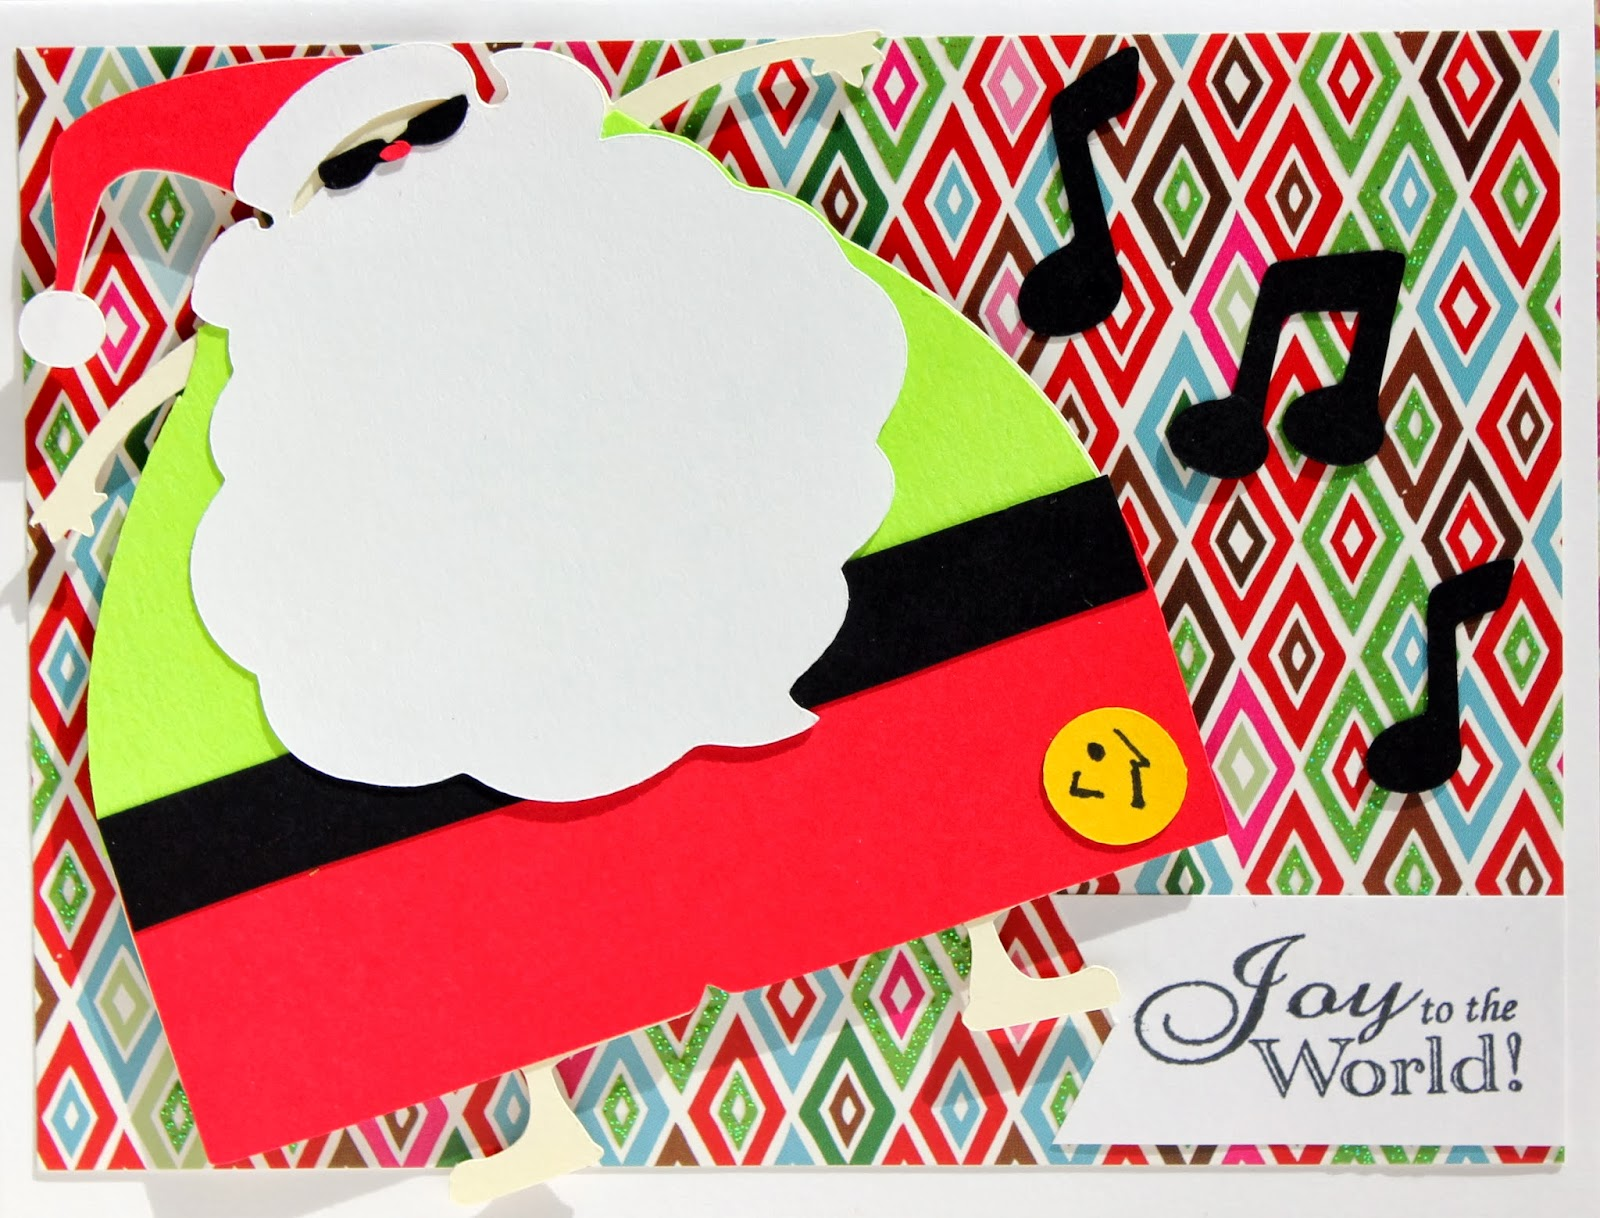 Zumba Christmas Images.The Cropping Canuck Zumba Santa Christmas Card Day 7